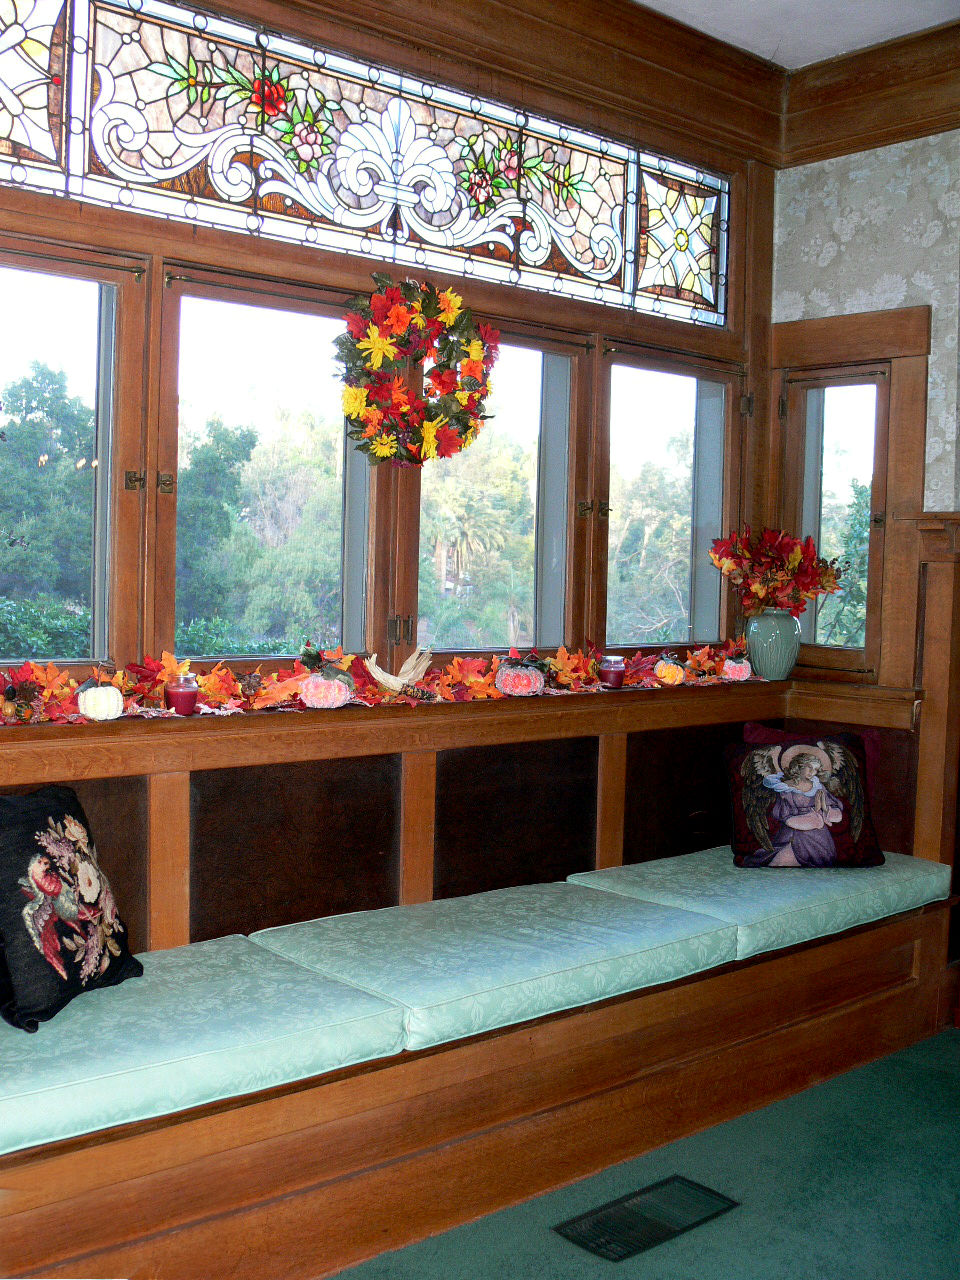 Best Antique leaded glass window above the window seat in dining room was removed from the